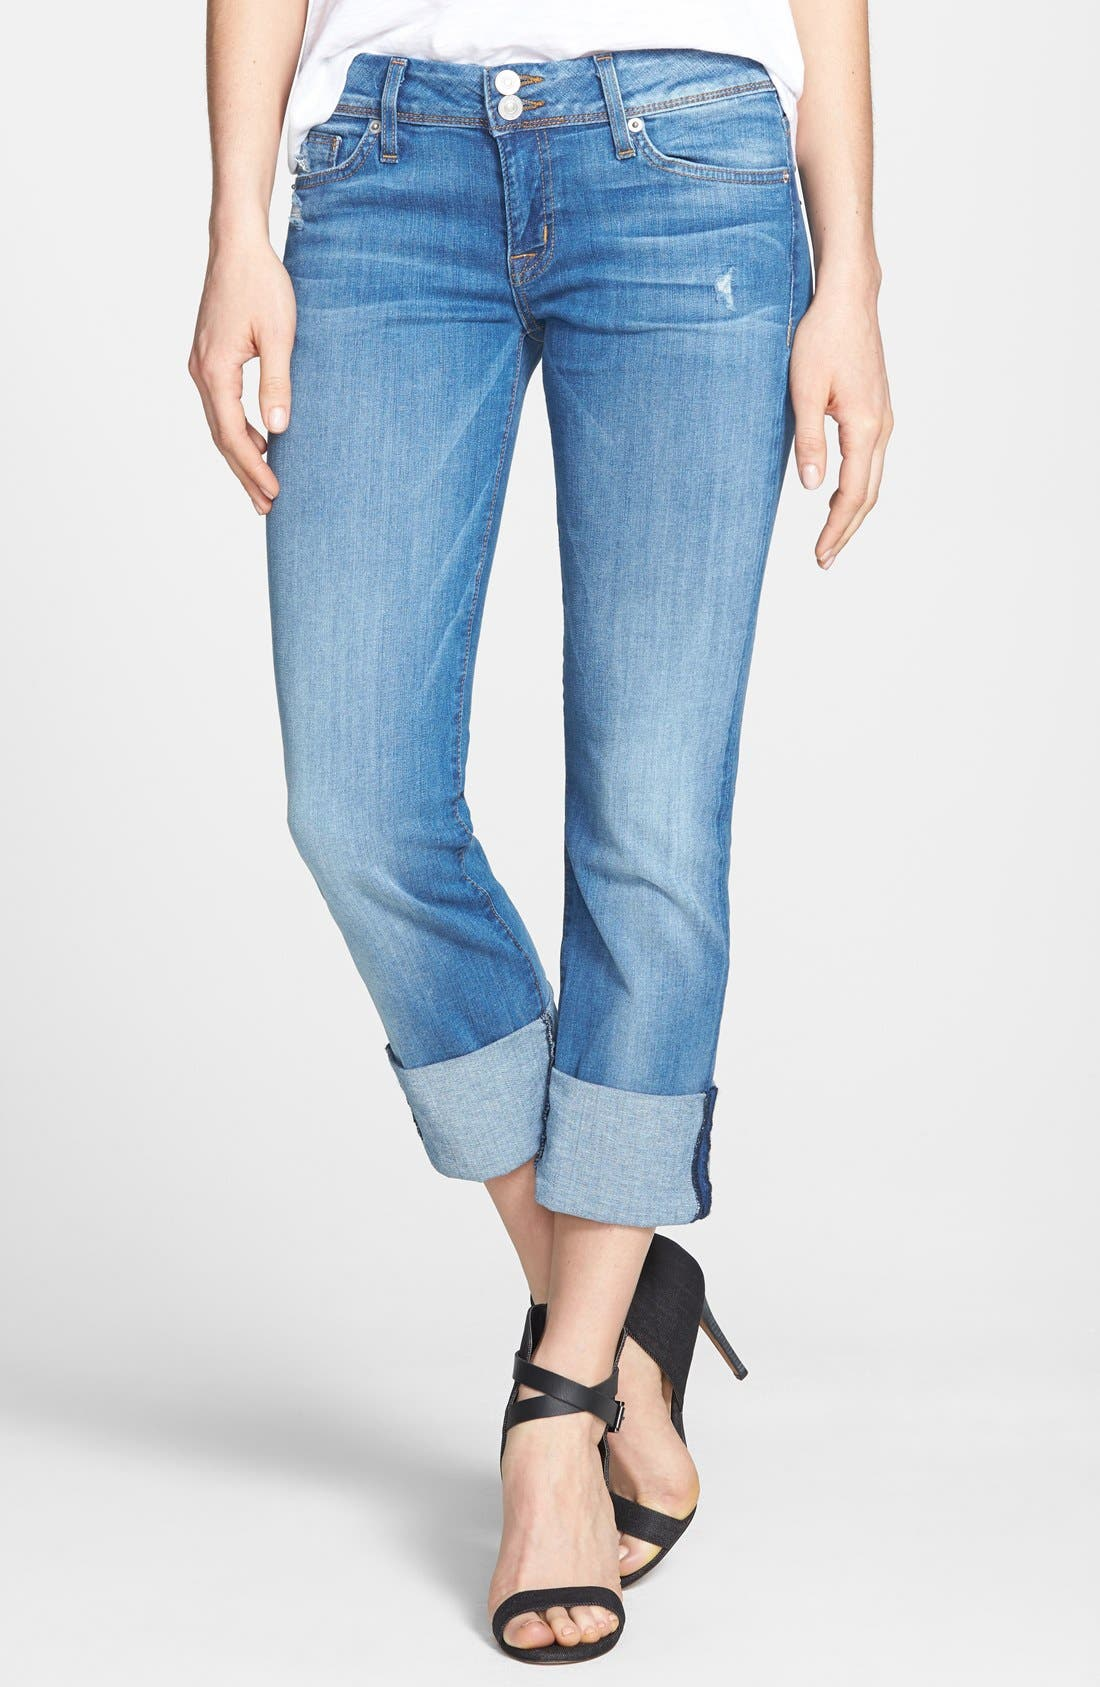 Alternate Image 1 Selected - Hudson Jeans 'Ginny' Crop Jeans (Voodoo Child)